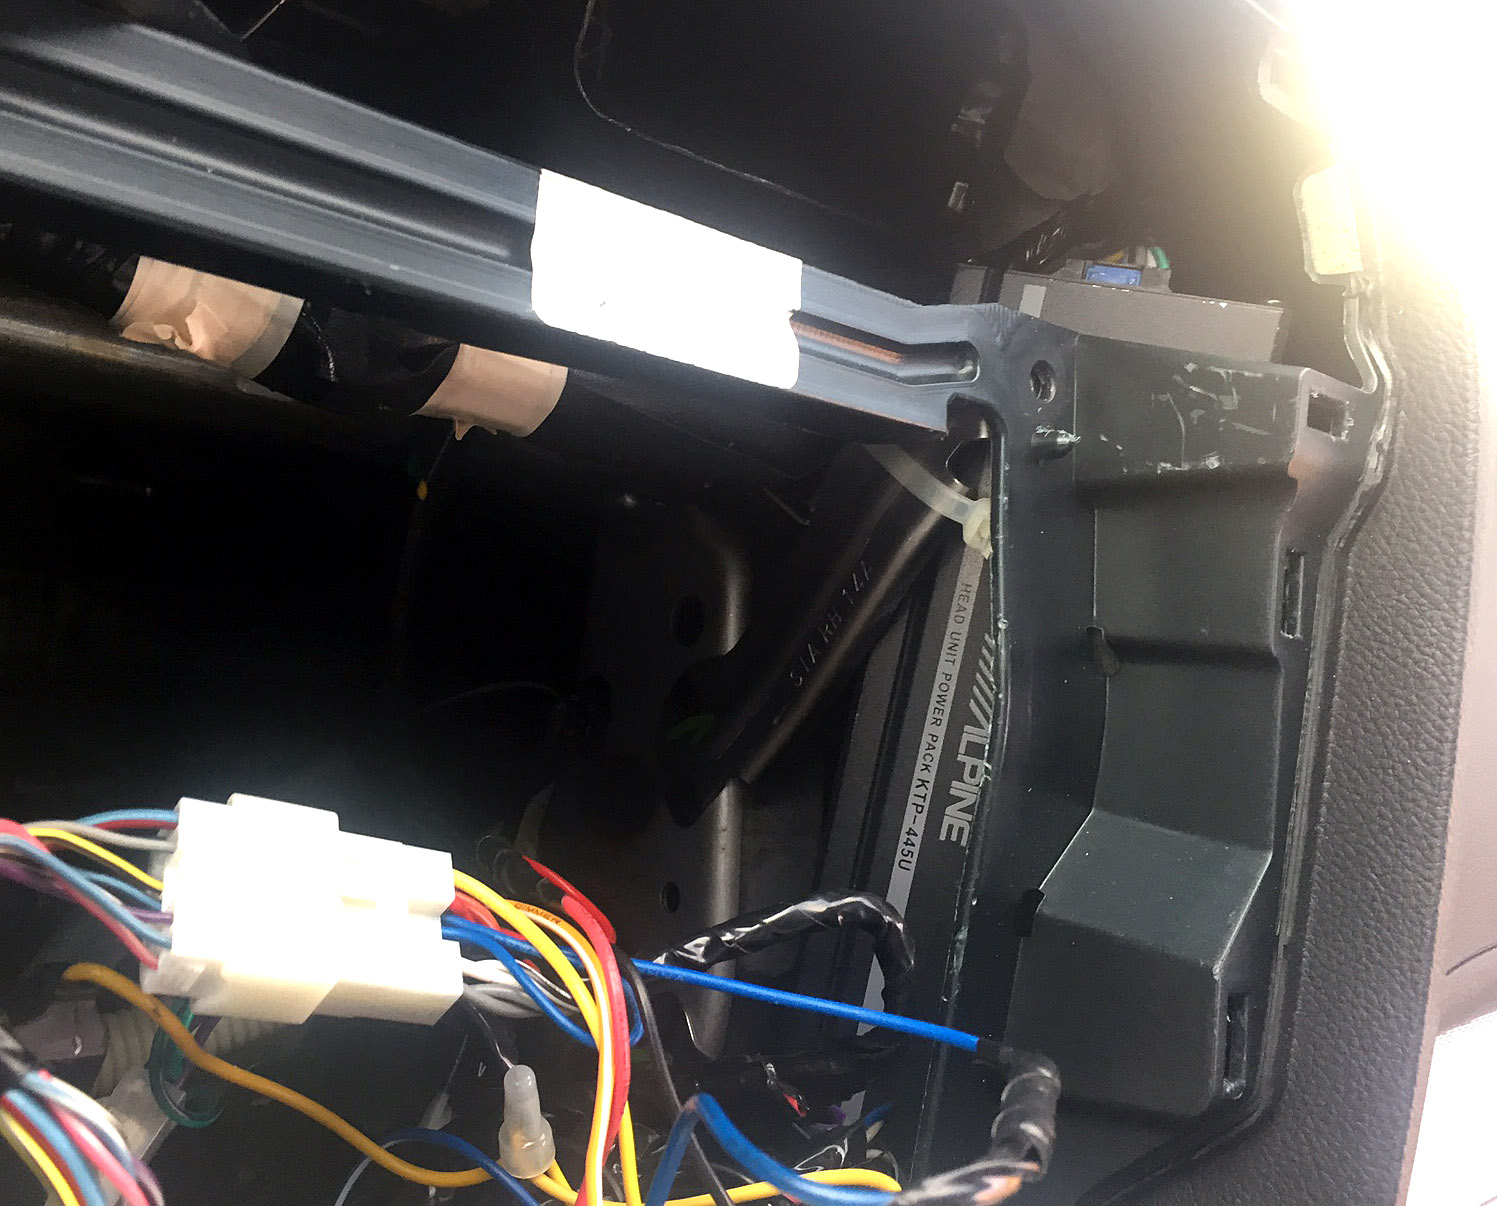 Alpine Ktp 445u Powerpack Amp Installation In 2015 Outback Page 3 Power Pack Wiring Diagram Img 3311